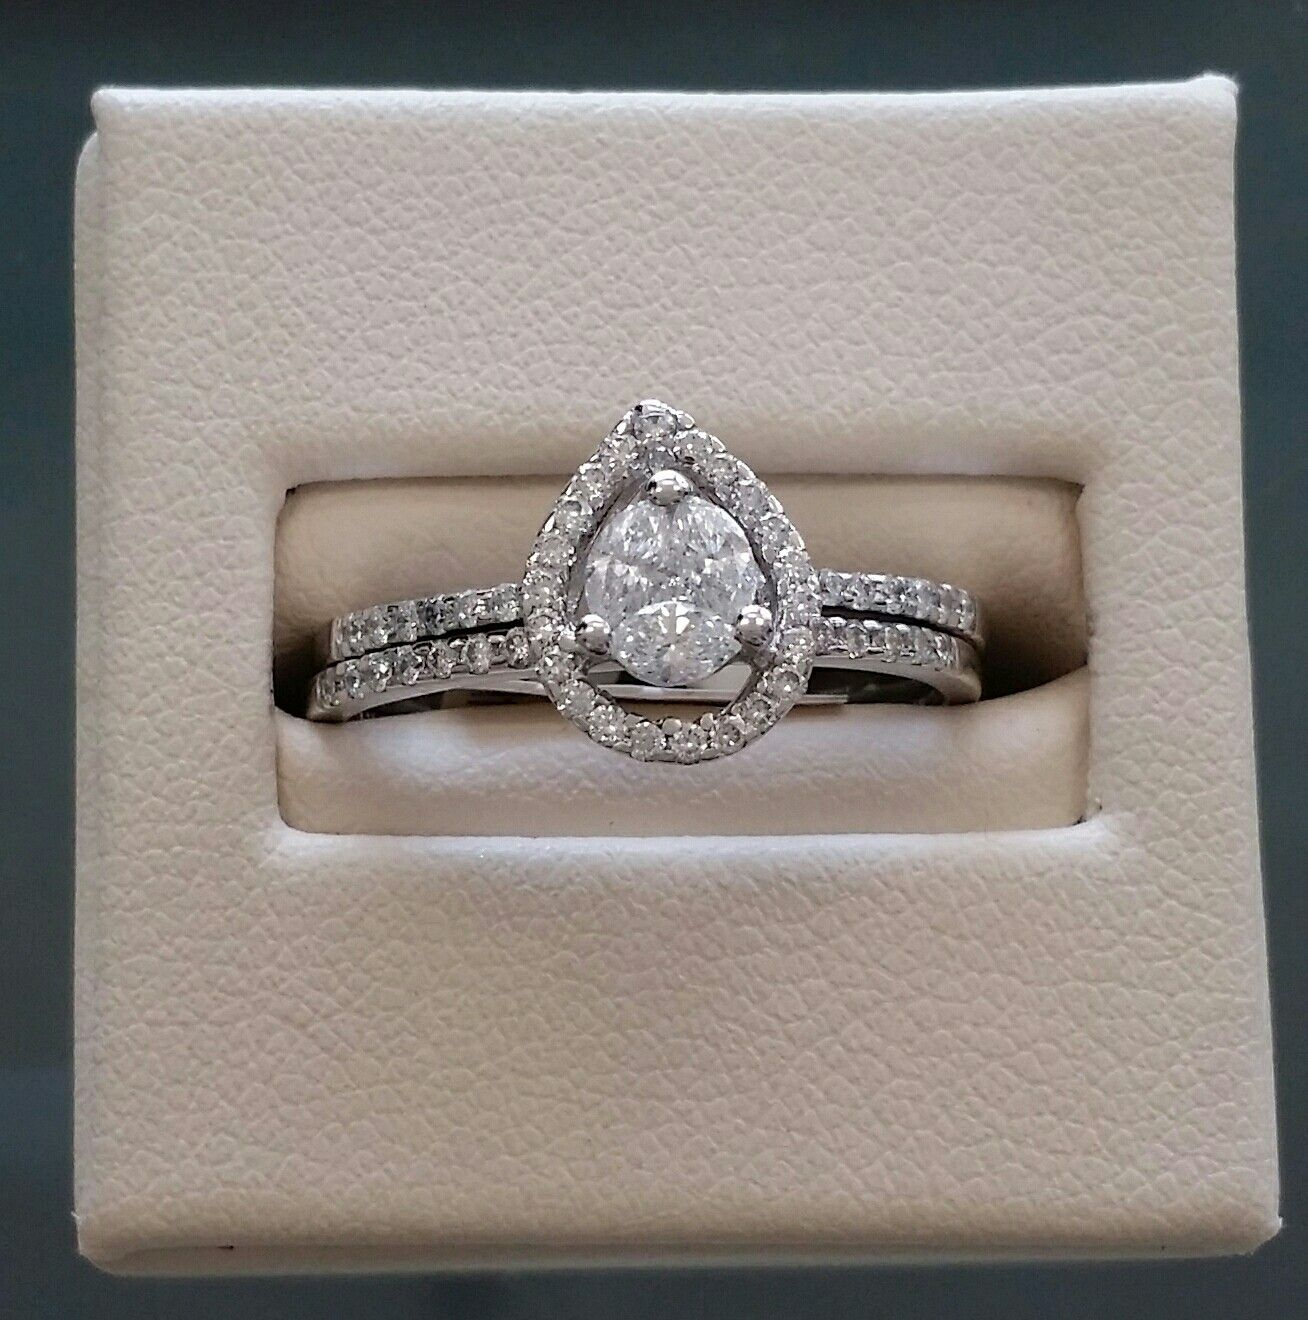 Pear Illusion engagement Ring at Northwood Jewelers on SALE